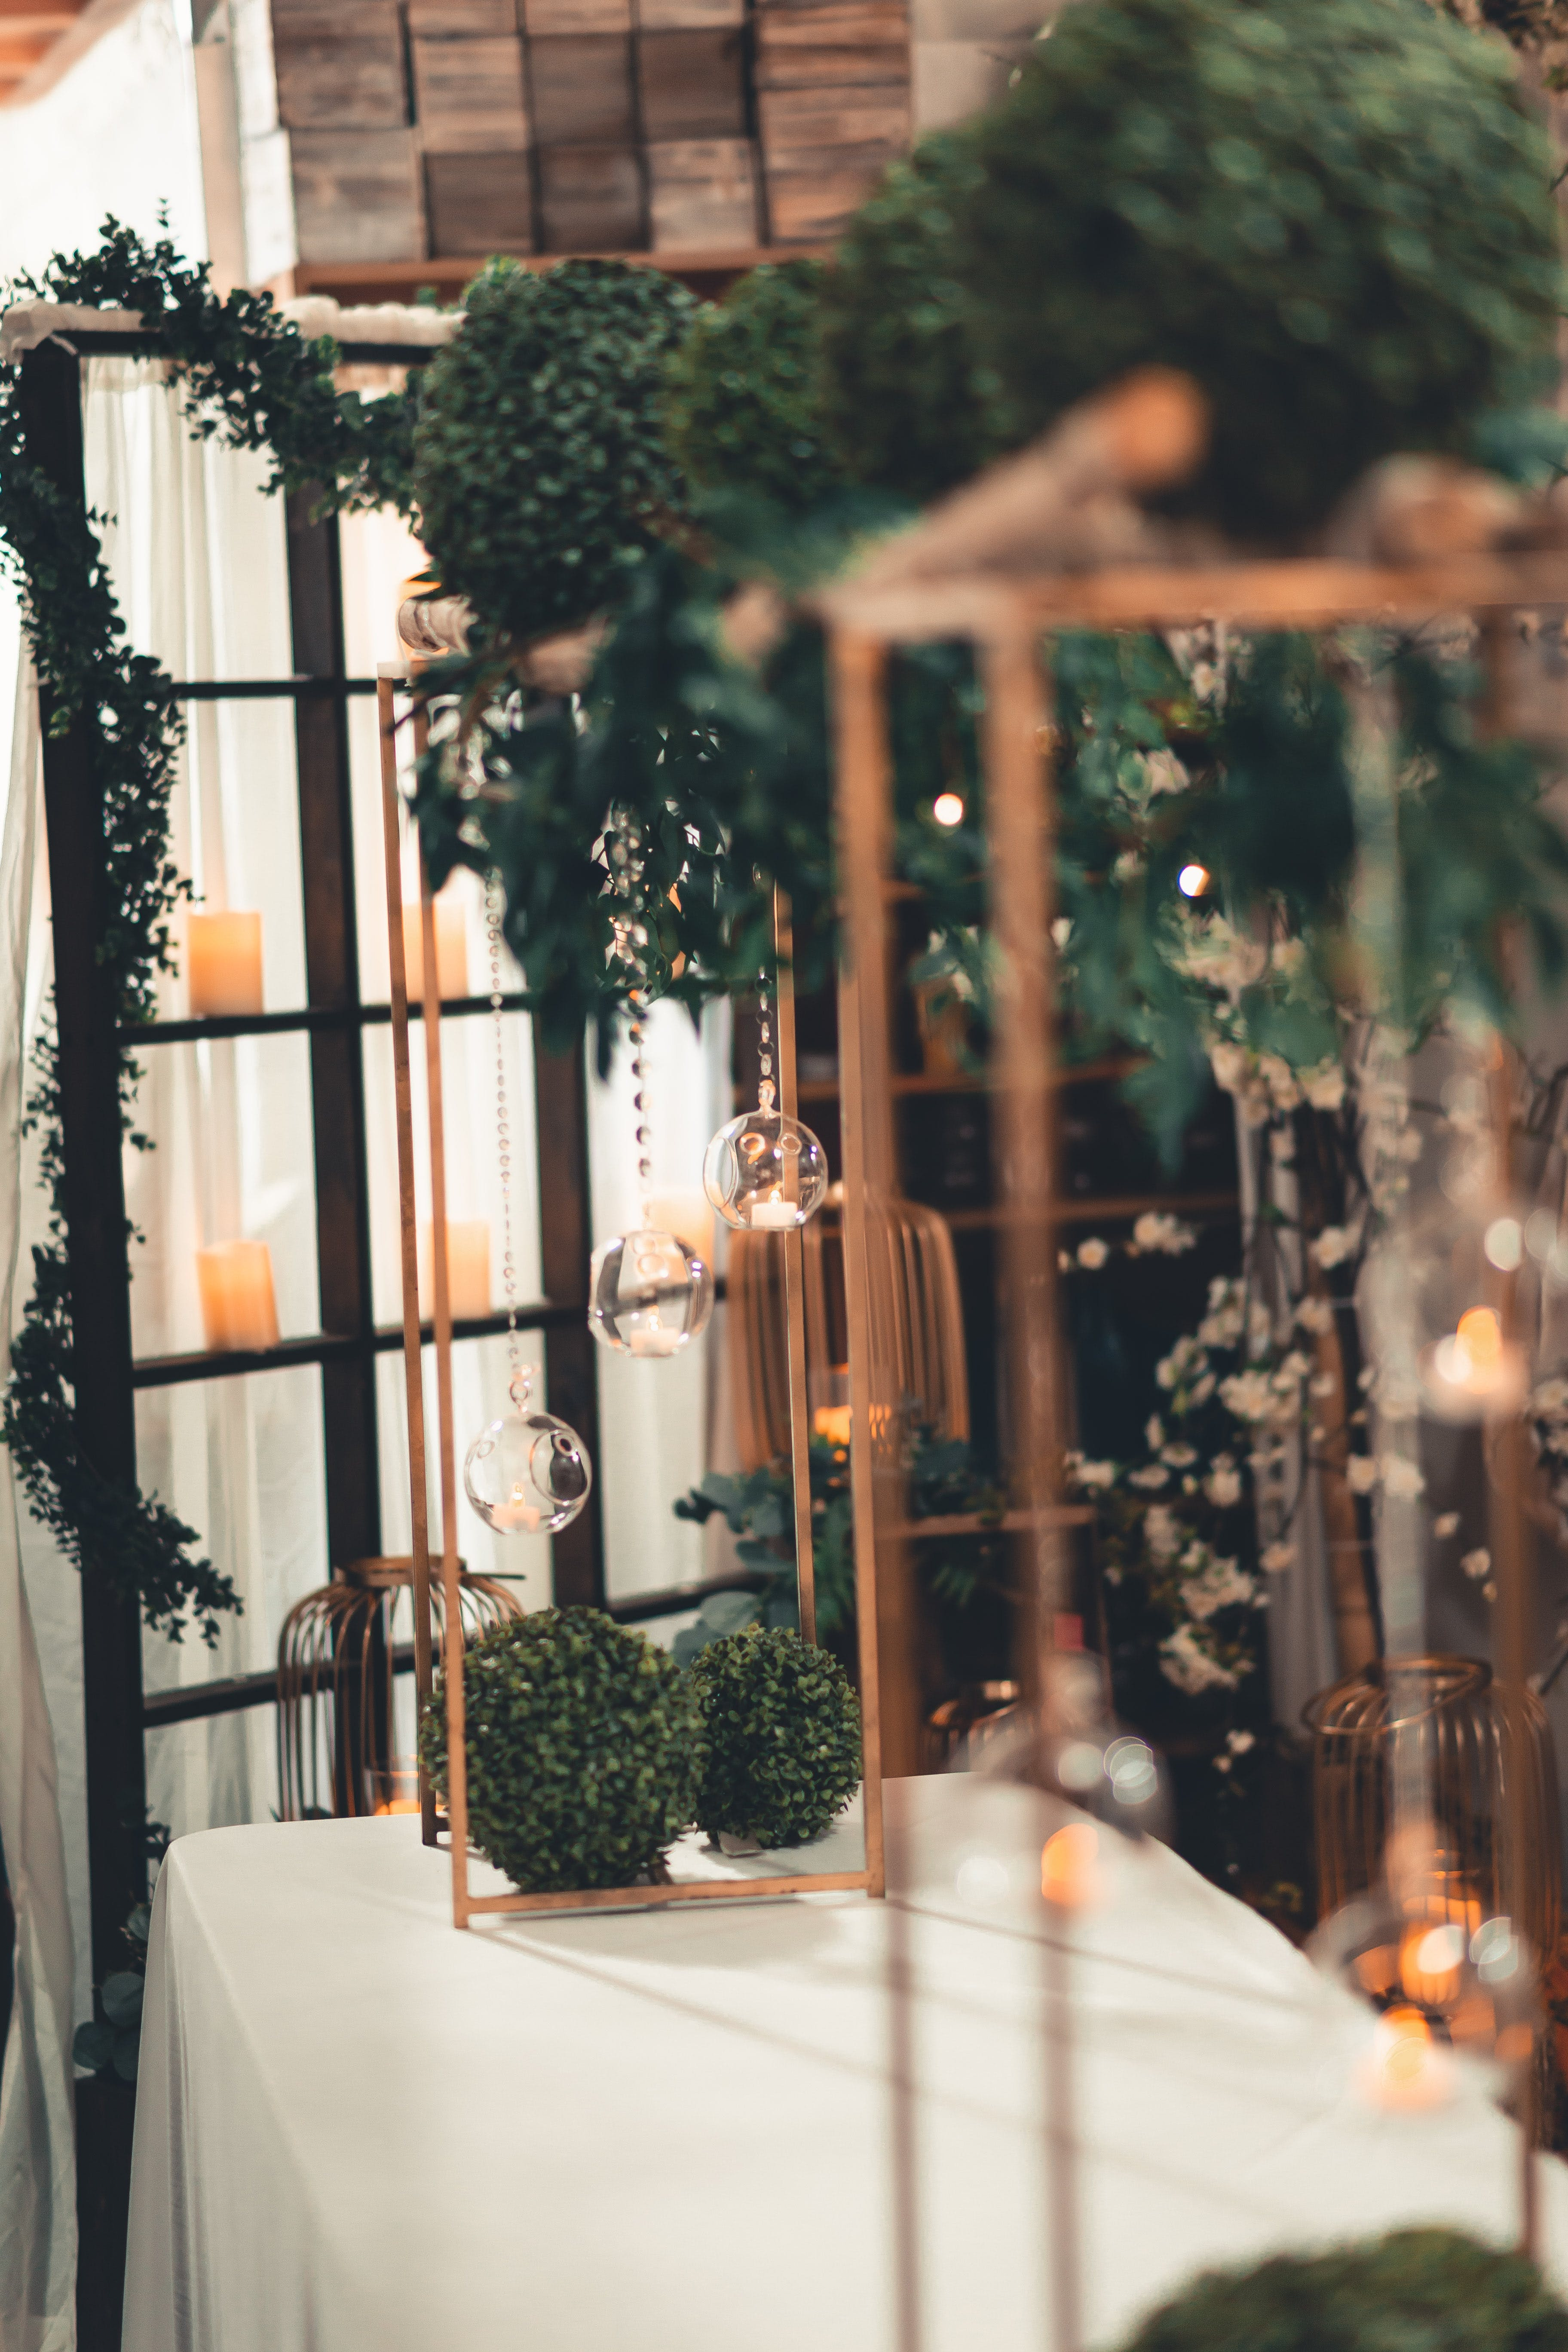 Green Plants on White Tablecloth Inside Lighted Room